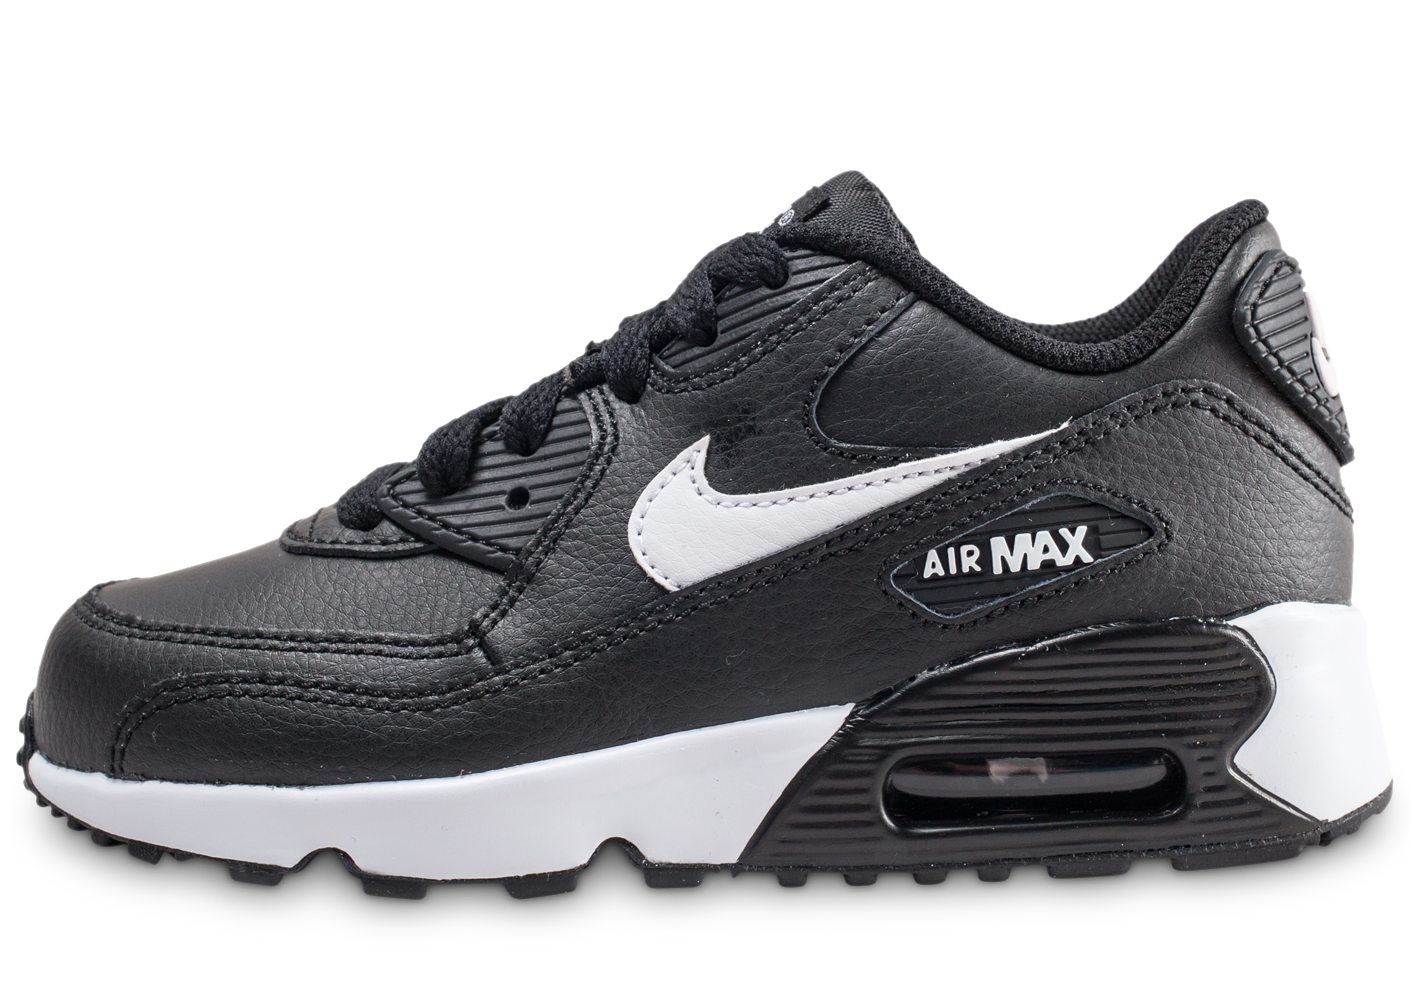 super popular 1d9e7 57f8e Nike air max 90 leather noire et blanche enfant.